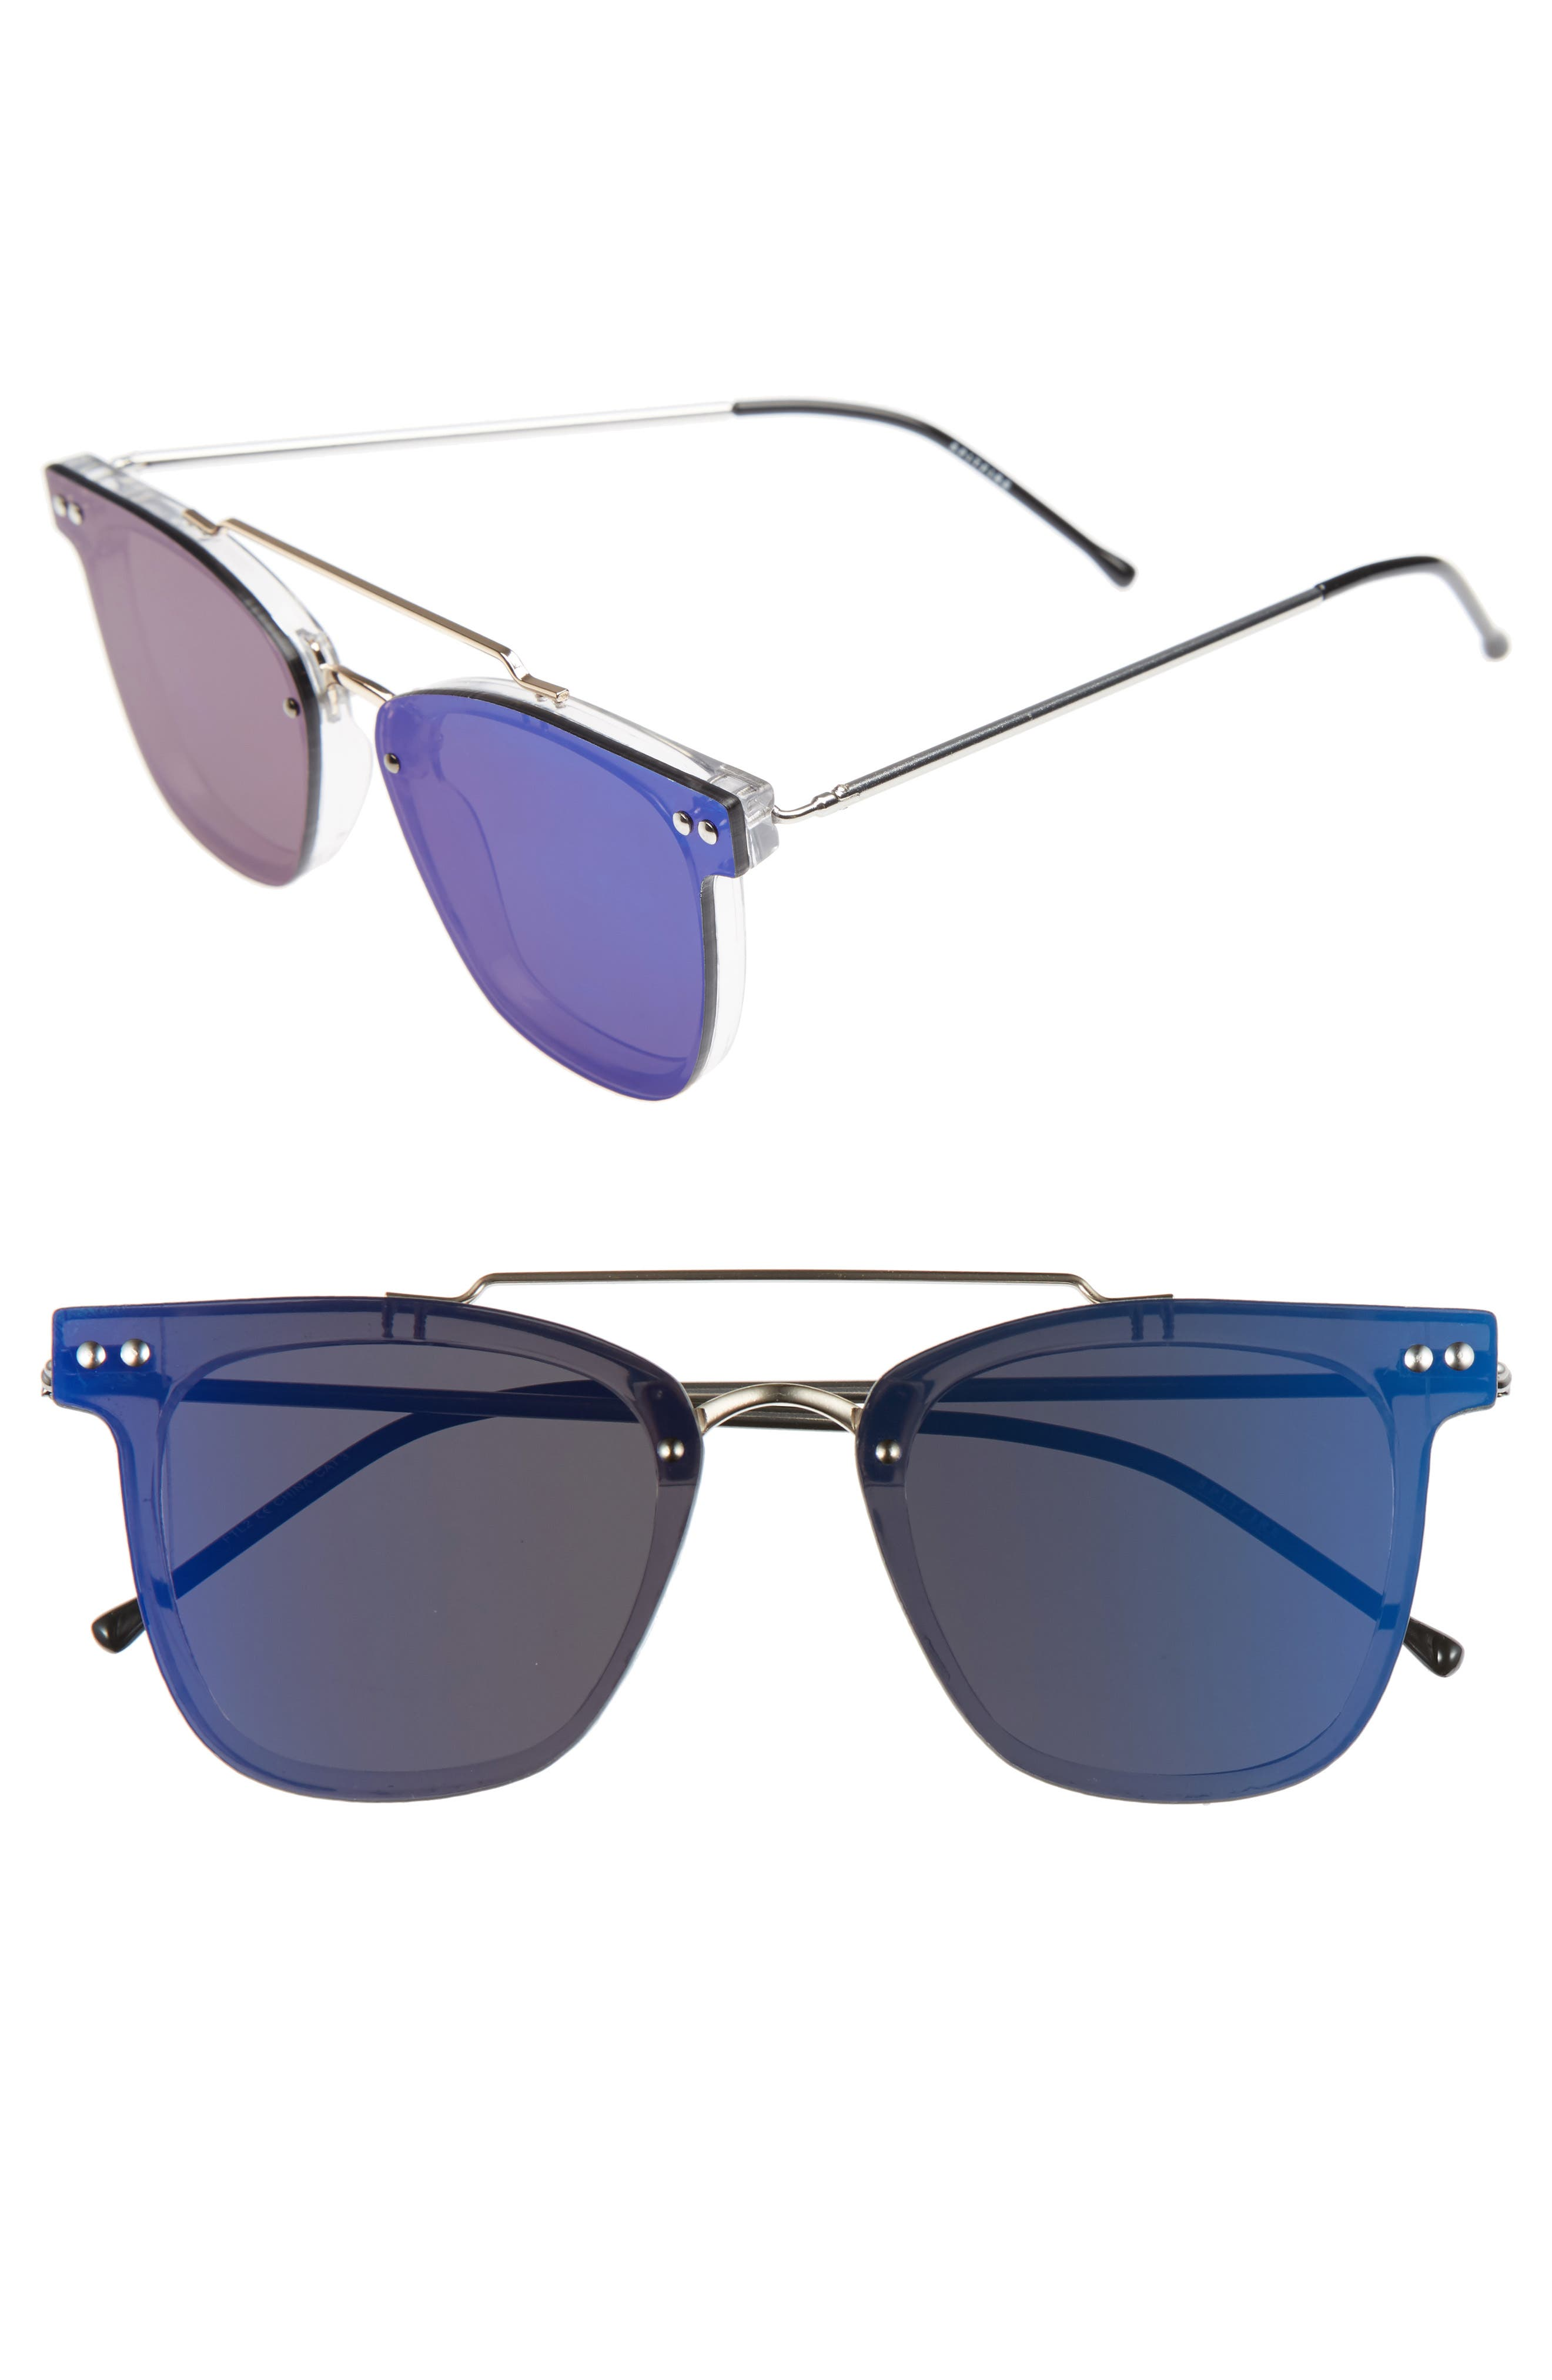 FTL 2 54mm Flat Frame Sunglasses,                             Main thumbnail 1, color,                             Clear/ Gold/ Blue Mirror